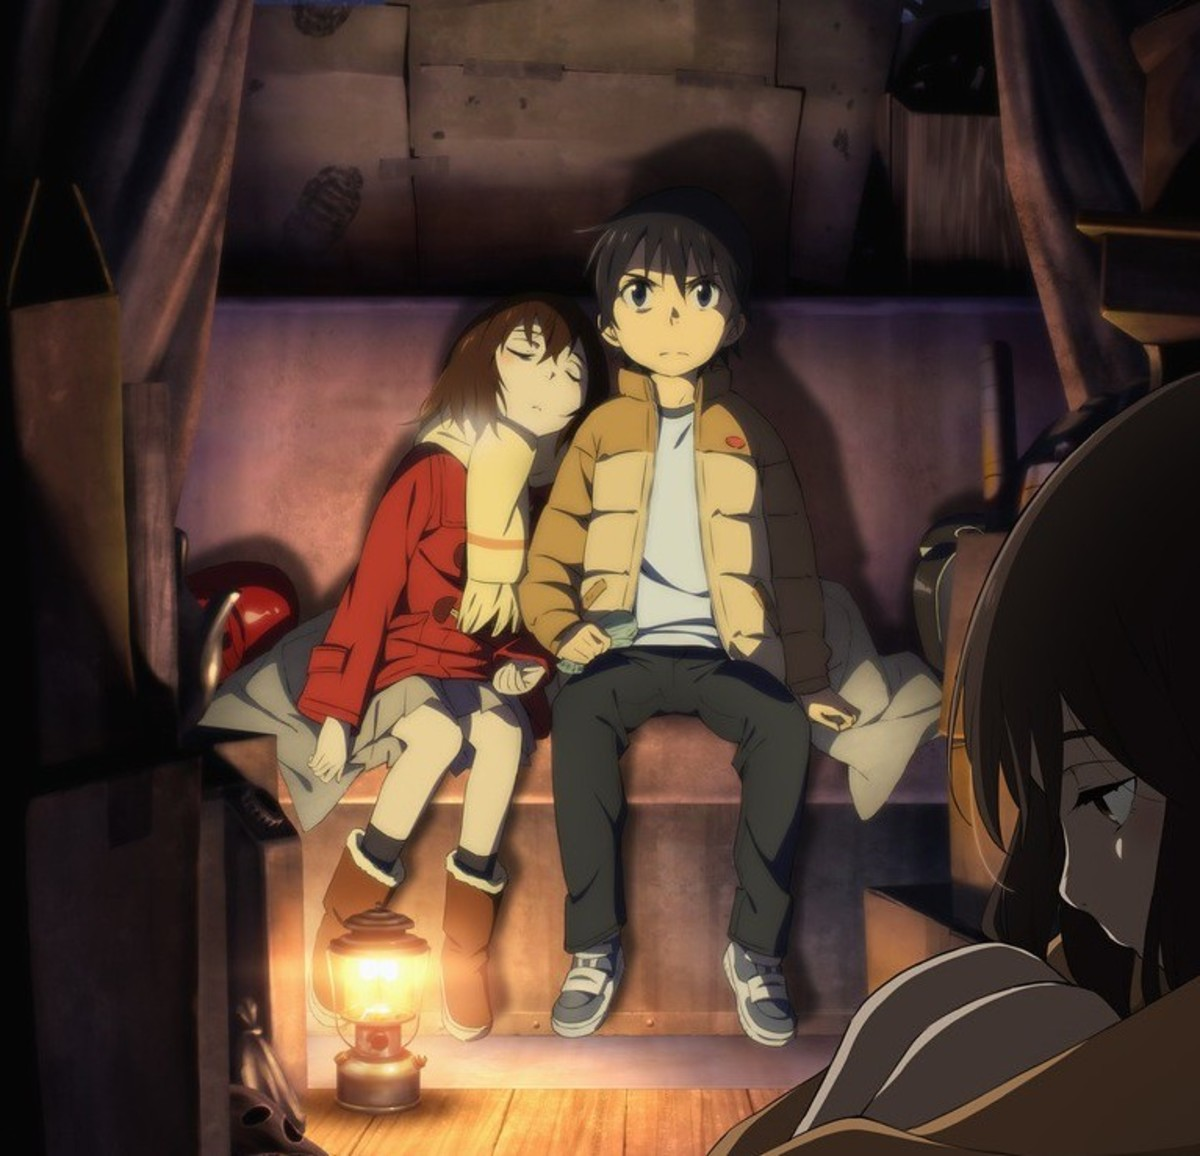 """""""Erased"""" by Kei Sanbe"""